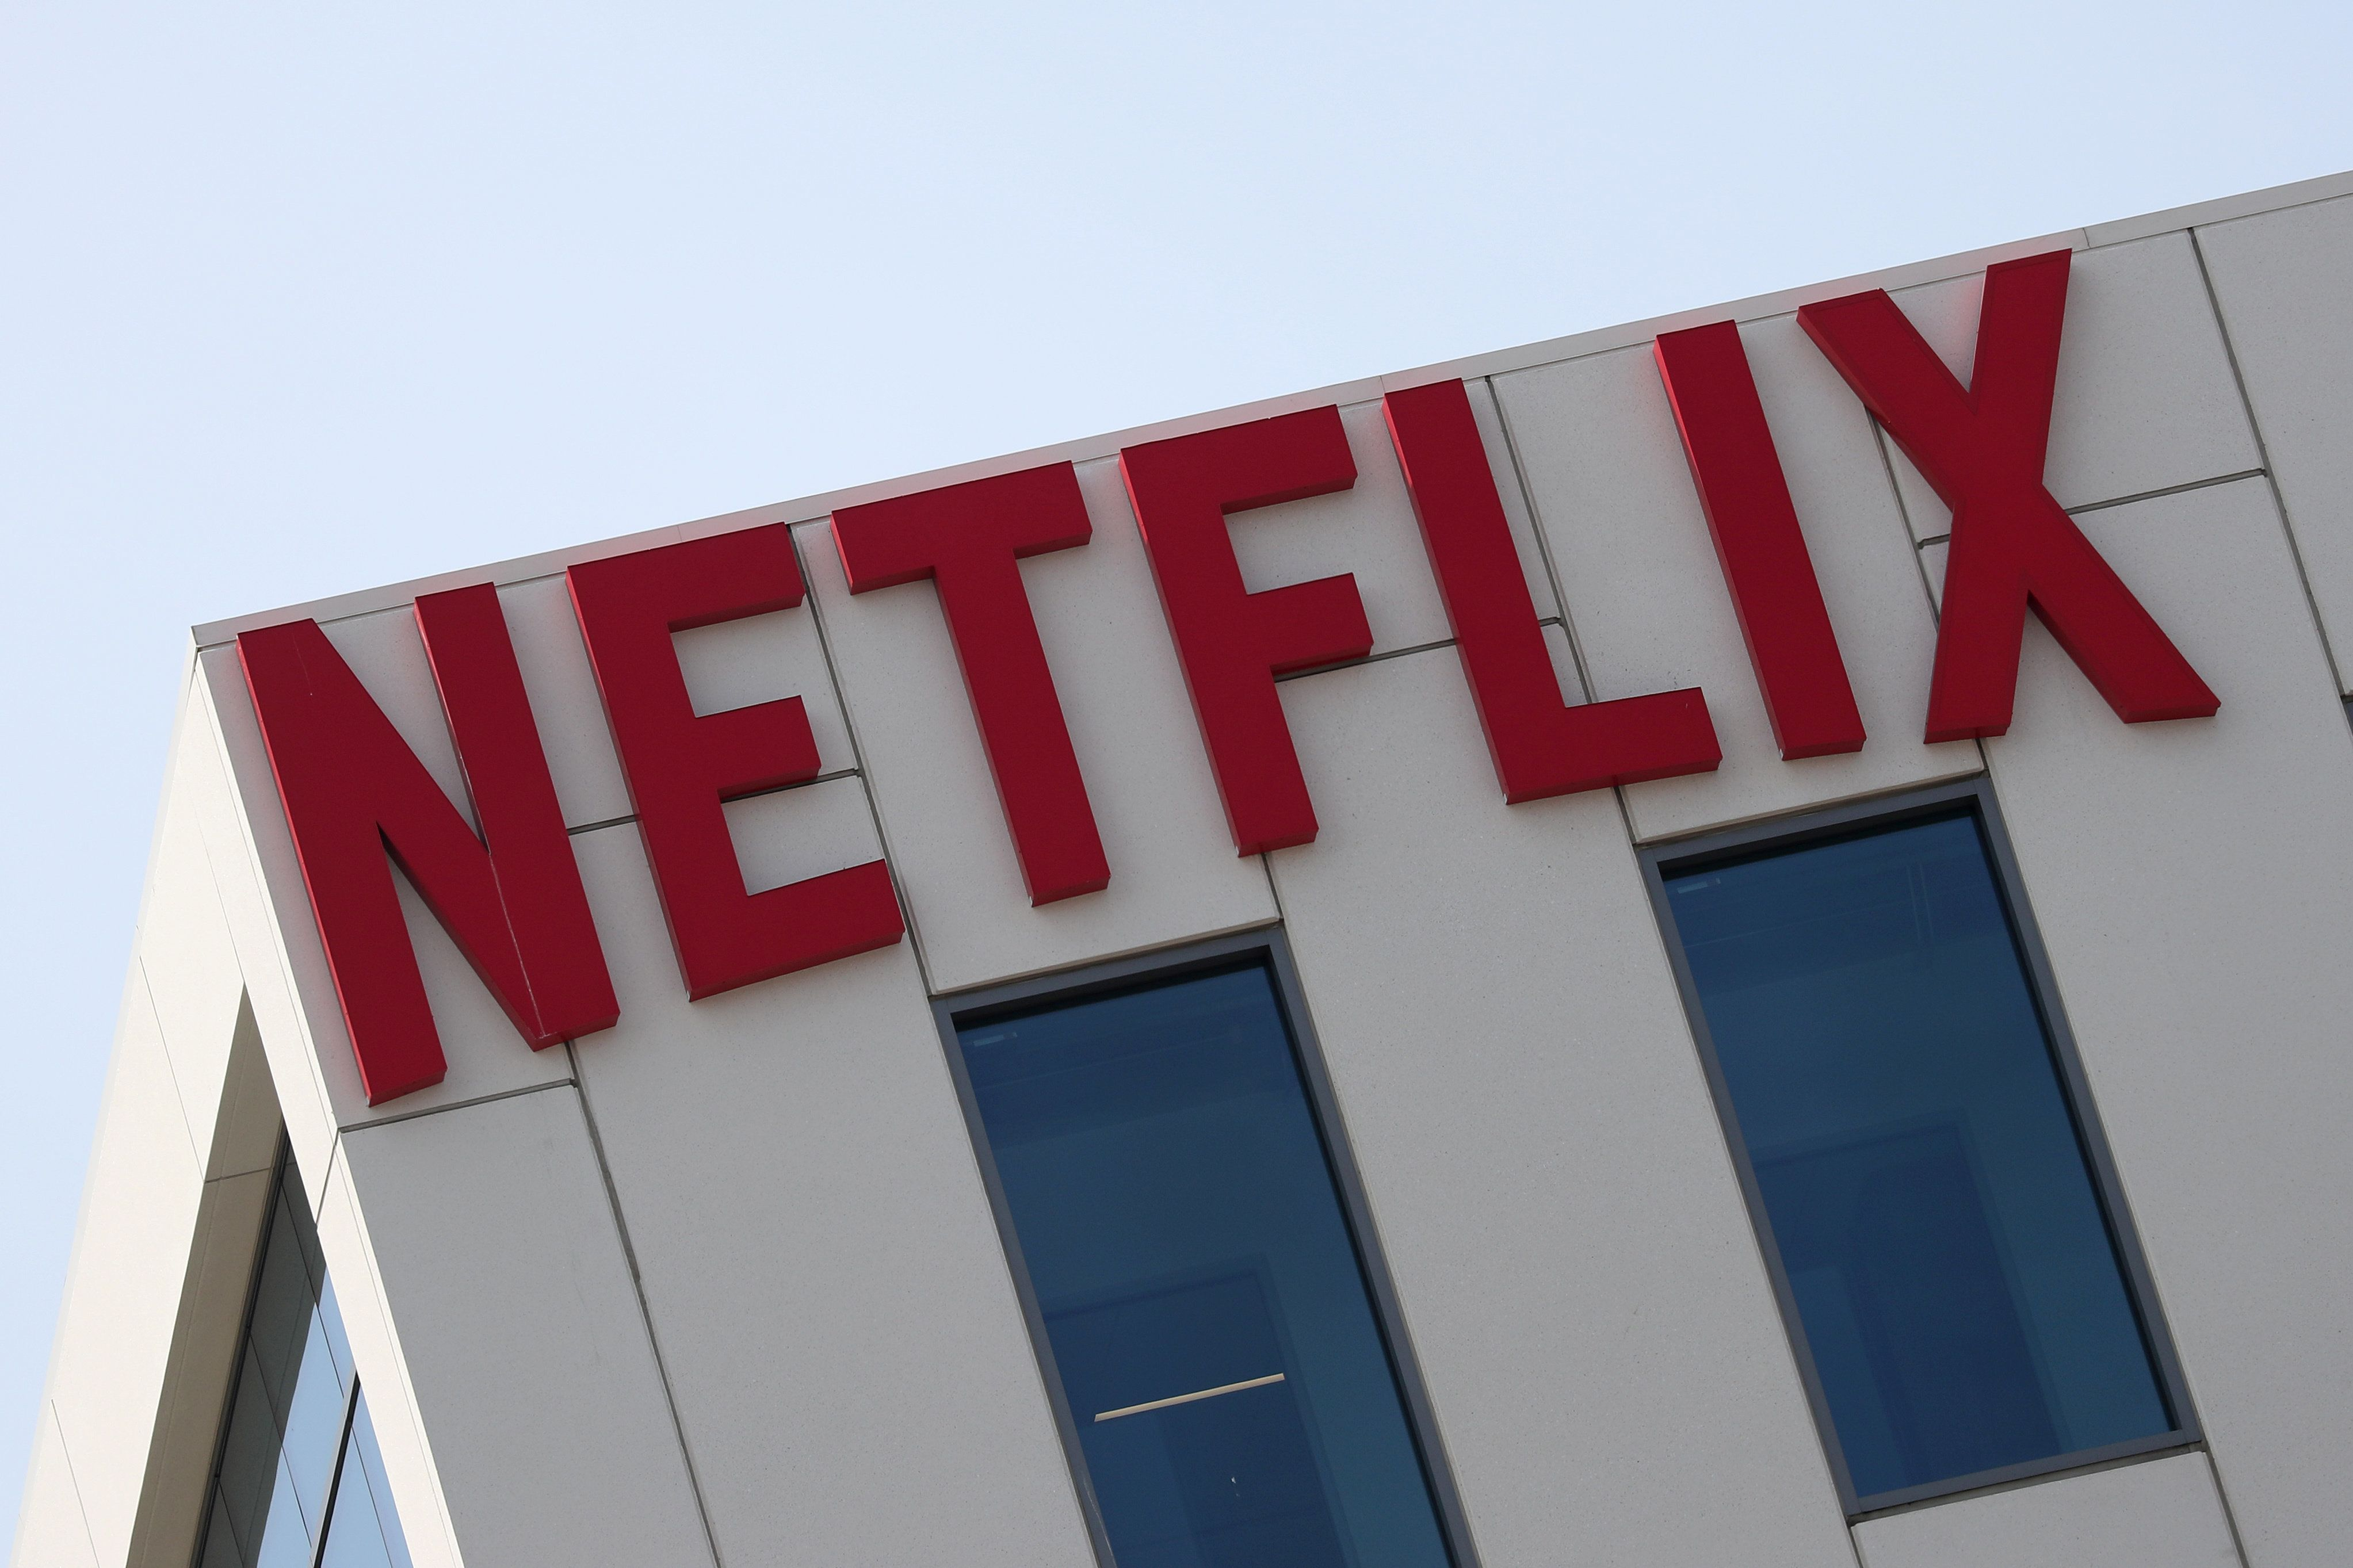 The Netflix logo is seen on their office in Hollywood, Los Angeles, California, U.S. July 16, 2018. REUTERS/Lucy Nicholson